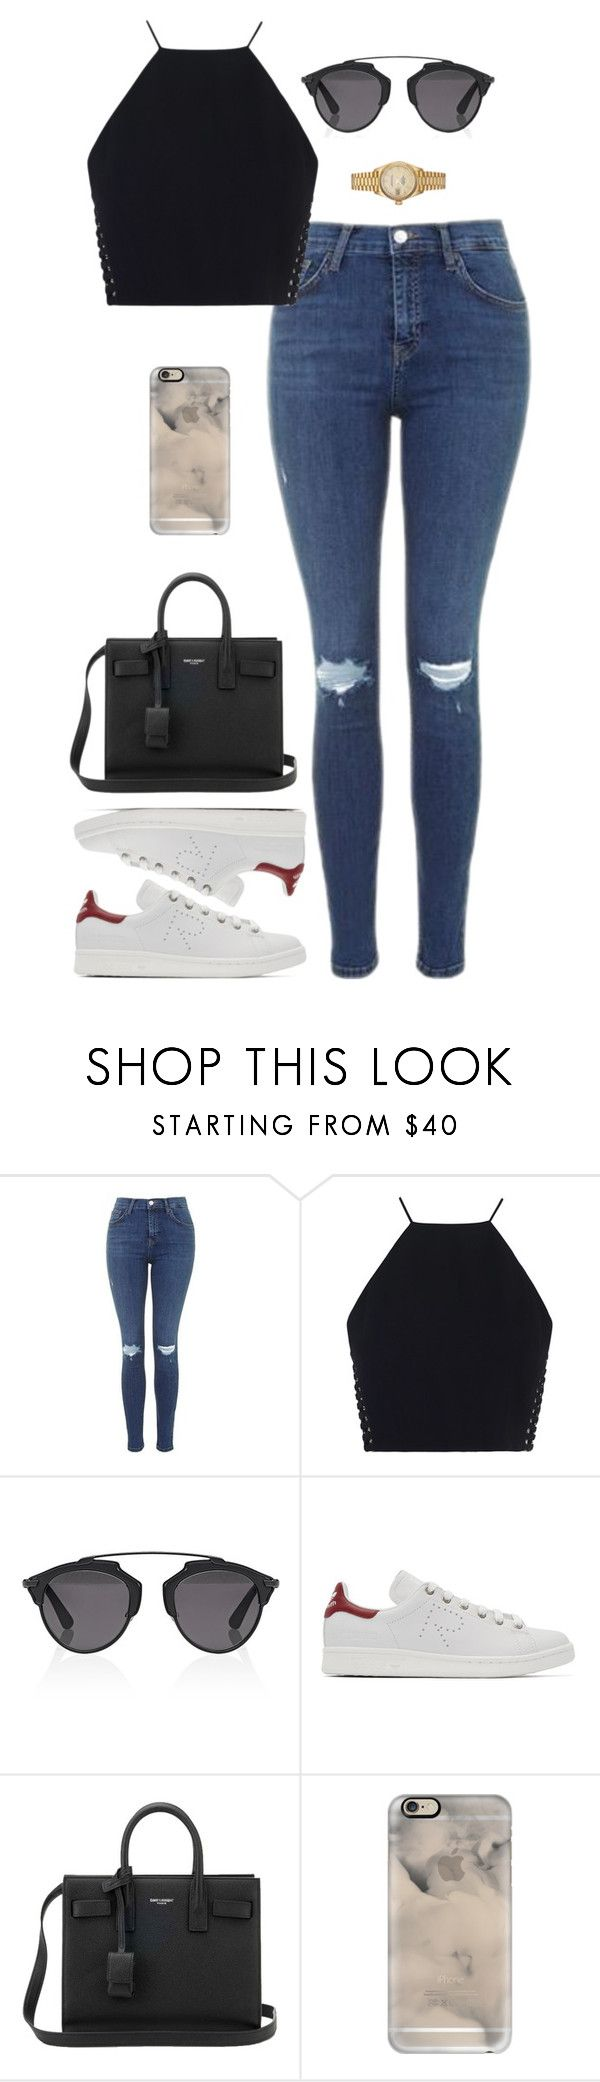 """Sin título #2246"" by namelessale ❤ liked on Polyvore featuring Topshop, Zimmermann, Christian Dior, Raf Simons, Yves Saint Laurent, Casetify and Rolex"